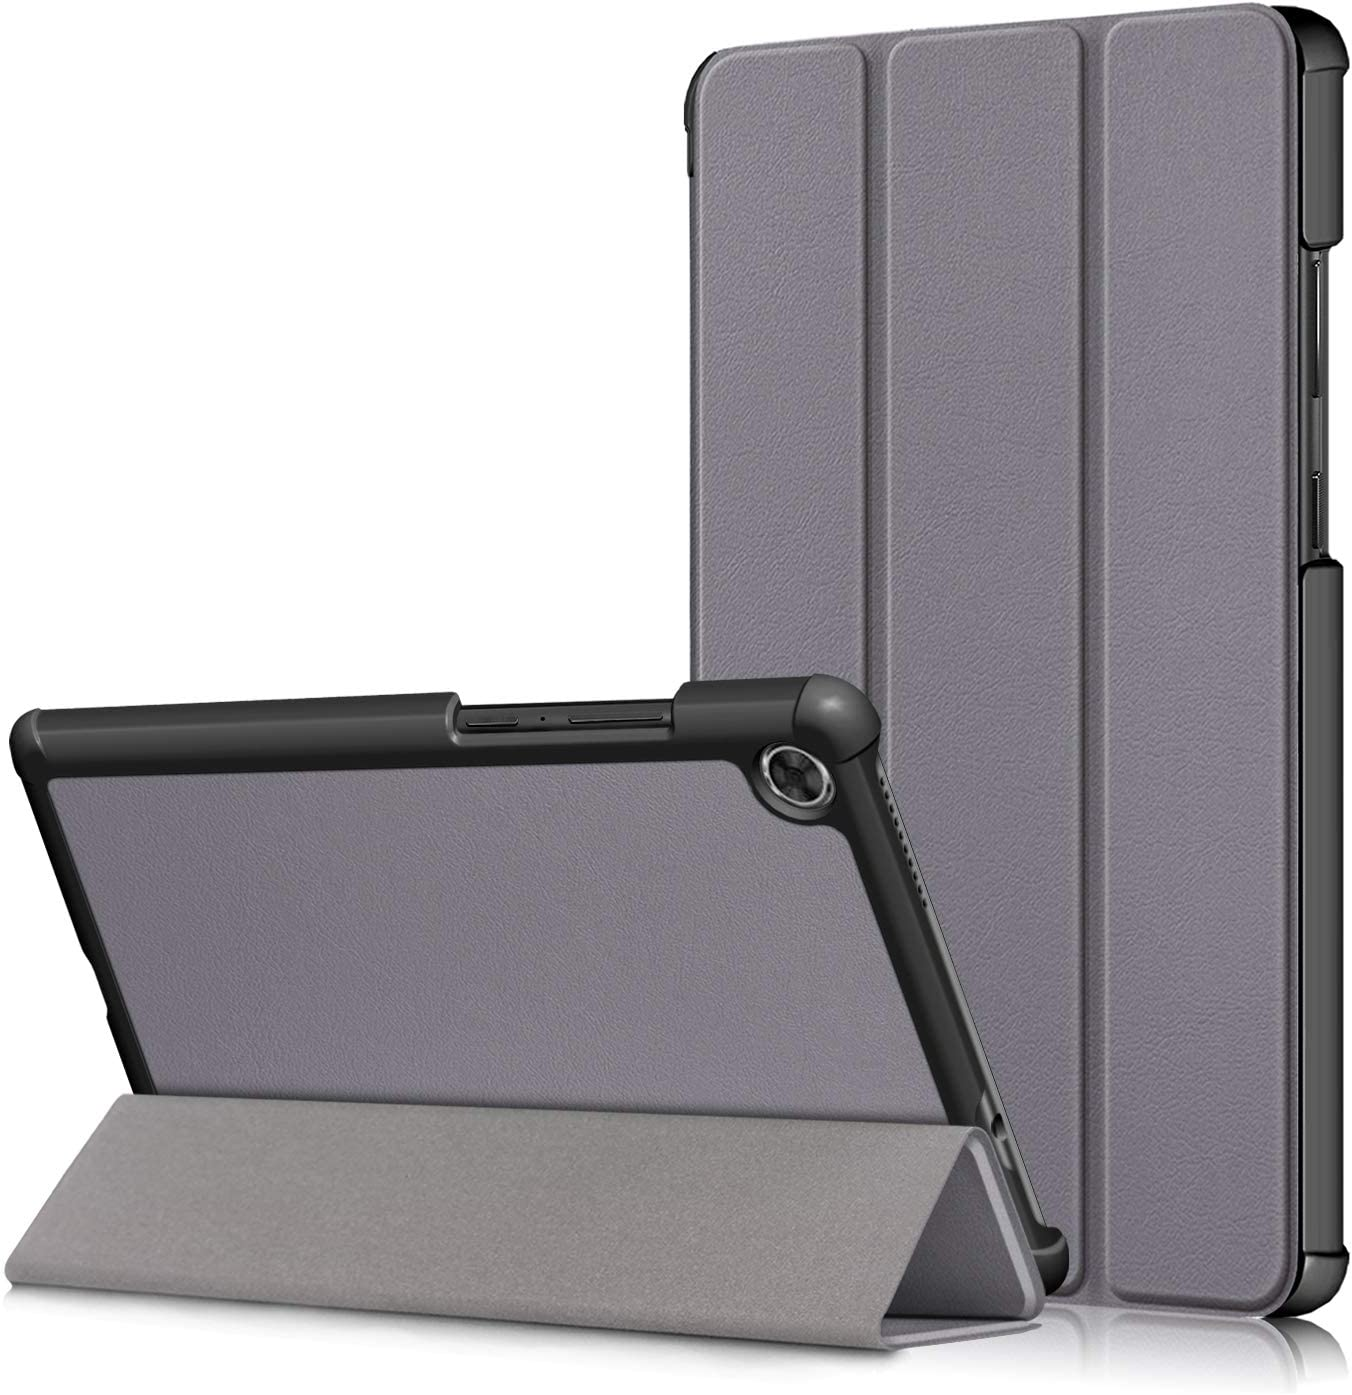 Case for Lenovo Tab M8 TB-8505F, Ratesell Lightweight Smart Trifold Stand Case Cover for Lenovo Tab M8 TB-8505F / TB-8505X / Lenovo Tab M8 (2nd Gen) 2019 Release Gray